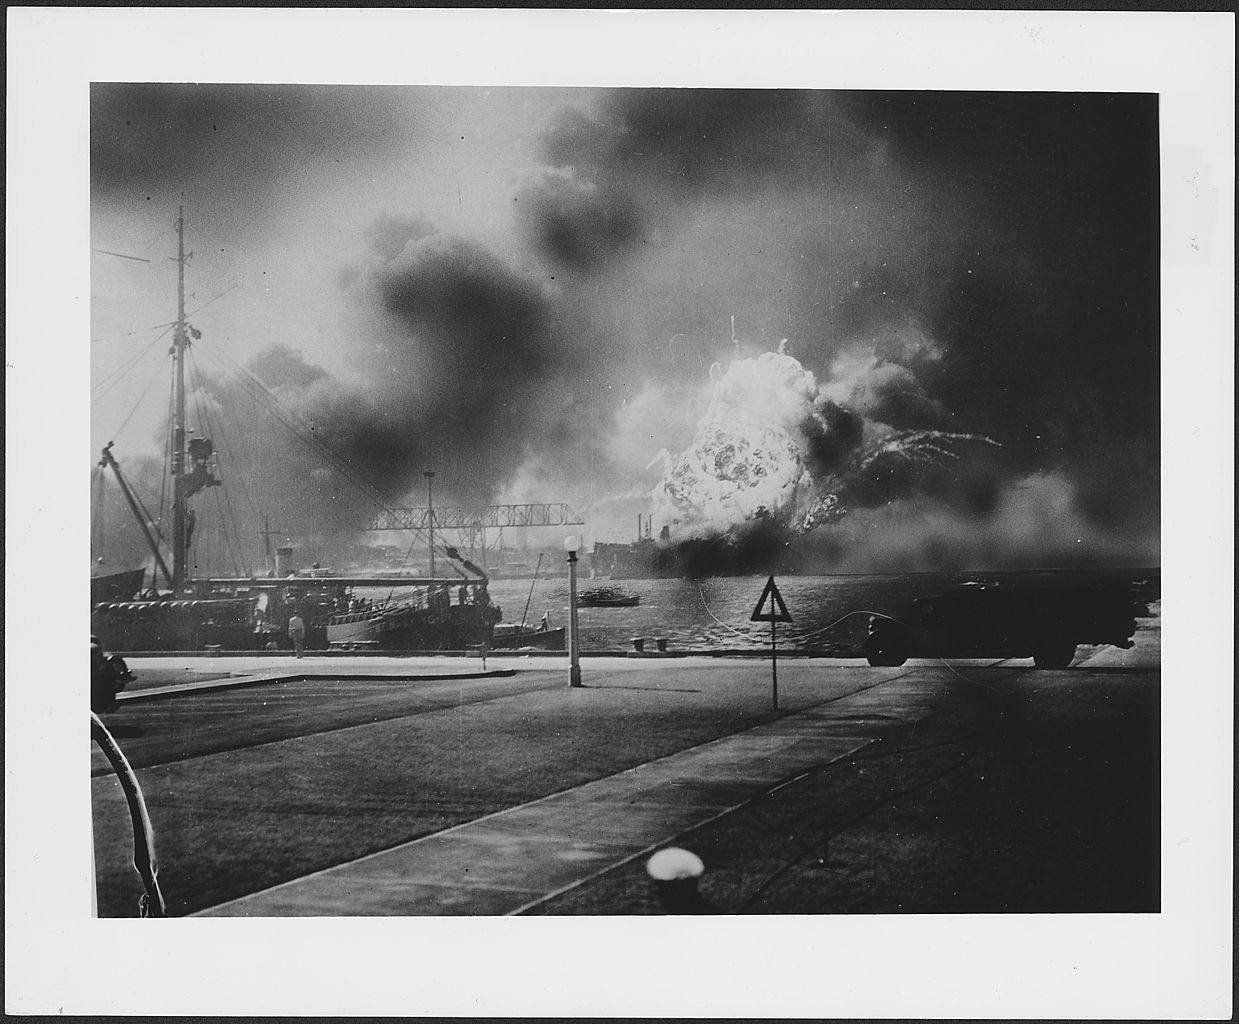 Photograph of the exact moment the U.S.S. Shaw exploded during the Japanese attack on Pearl Harbor.